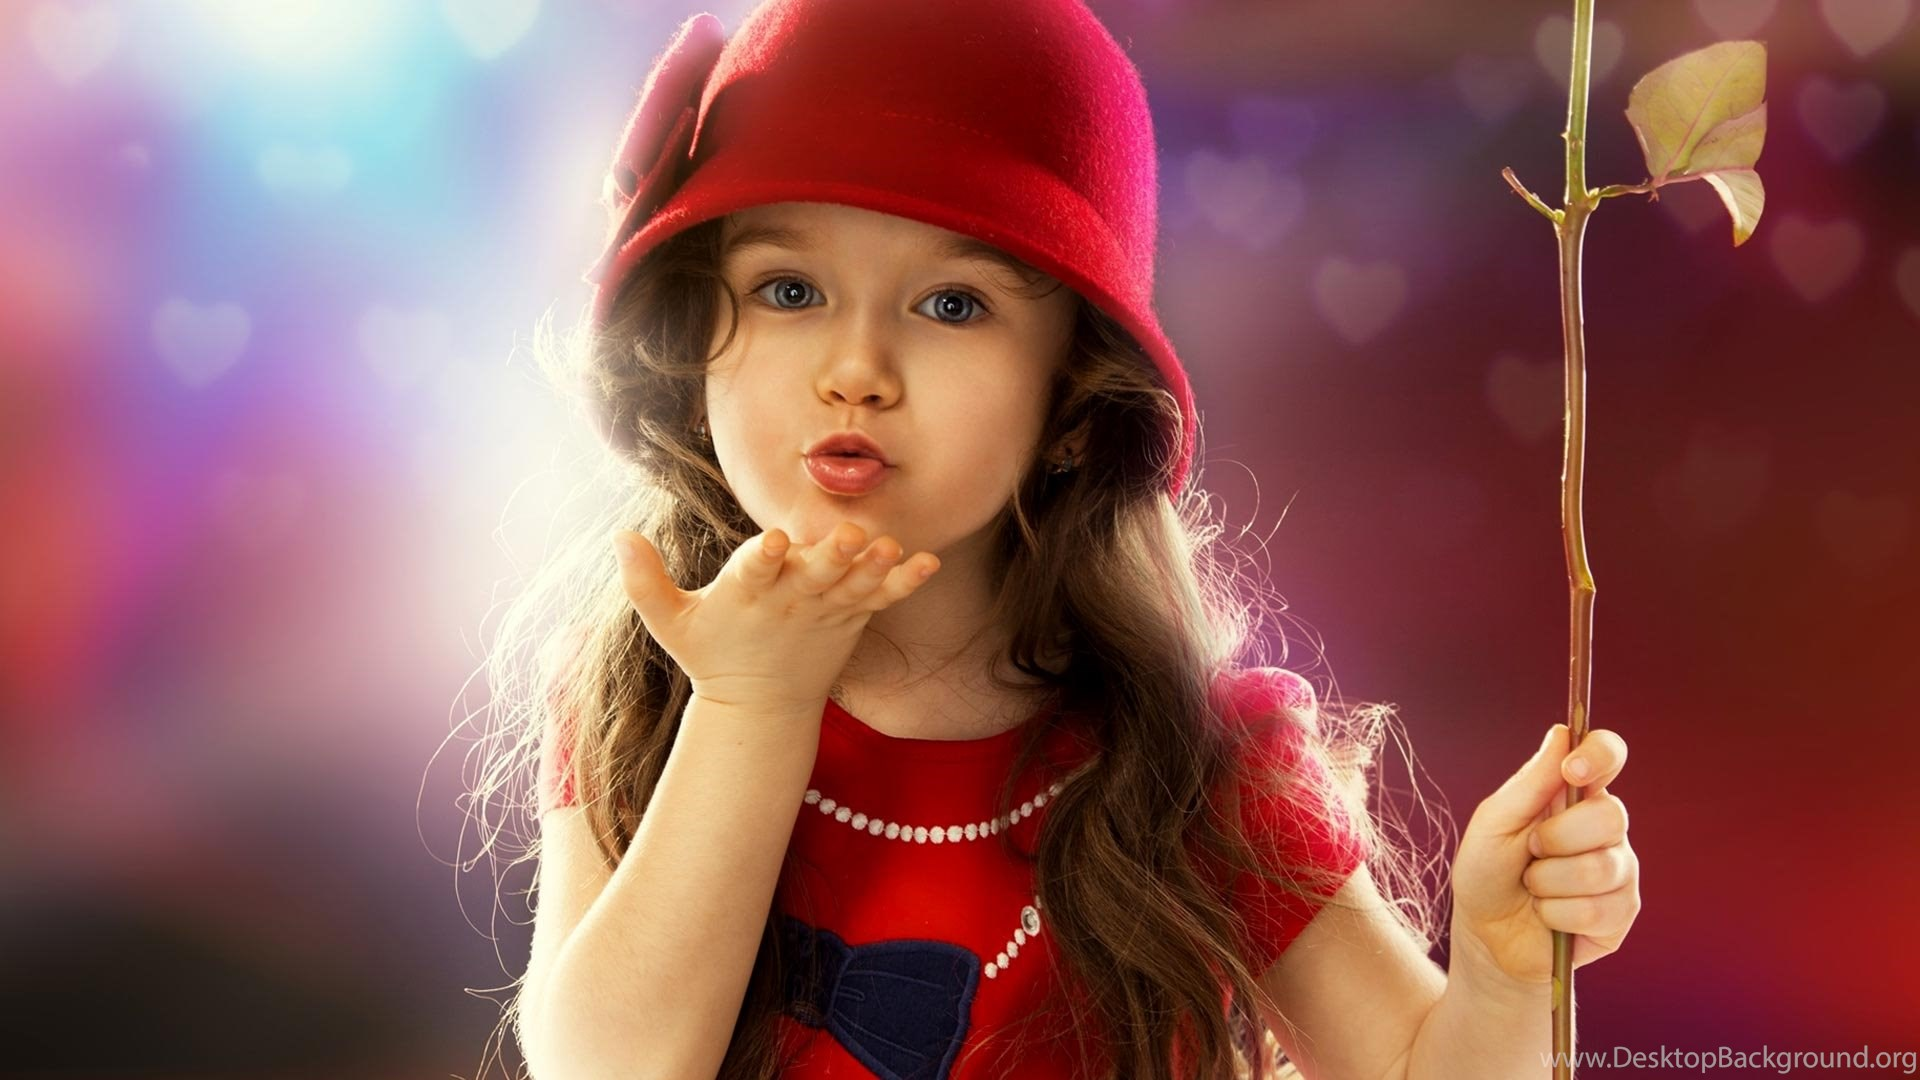 sweet baby girl wallpapers hd for desktop hdwallpicx com desktop